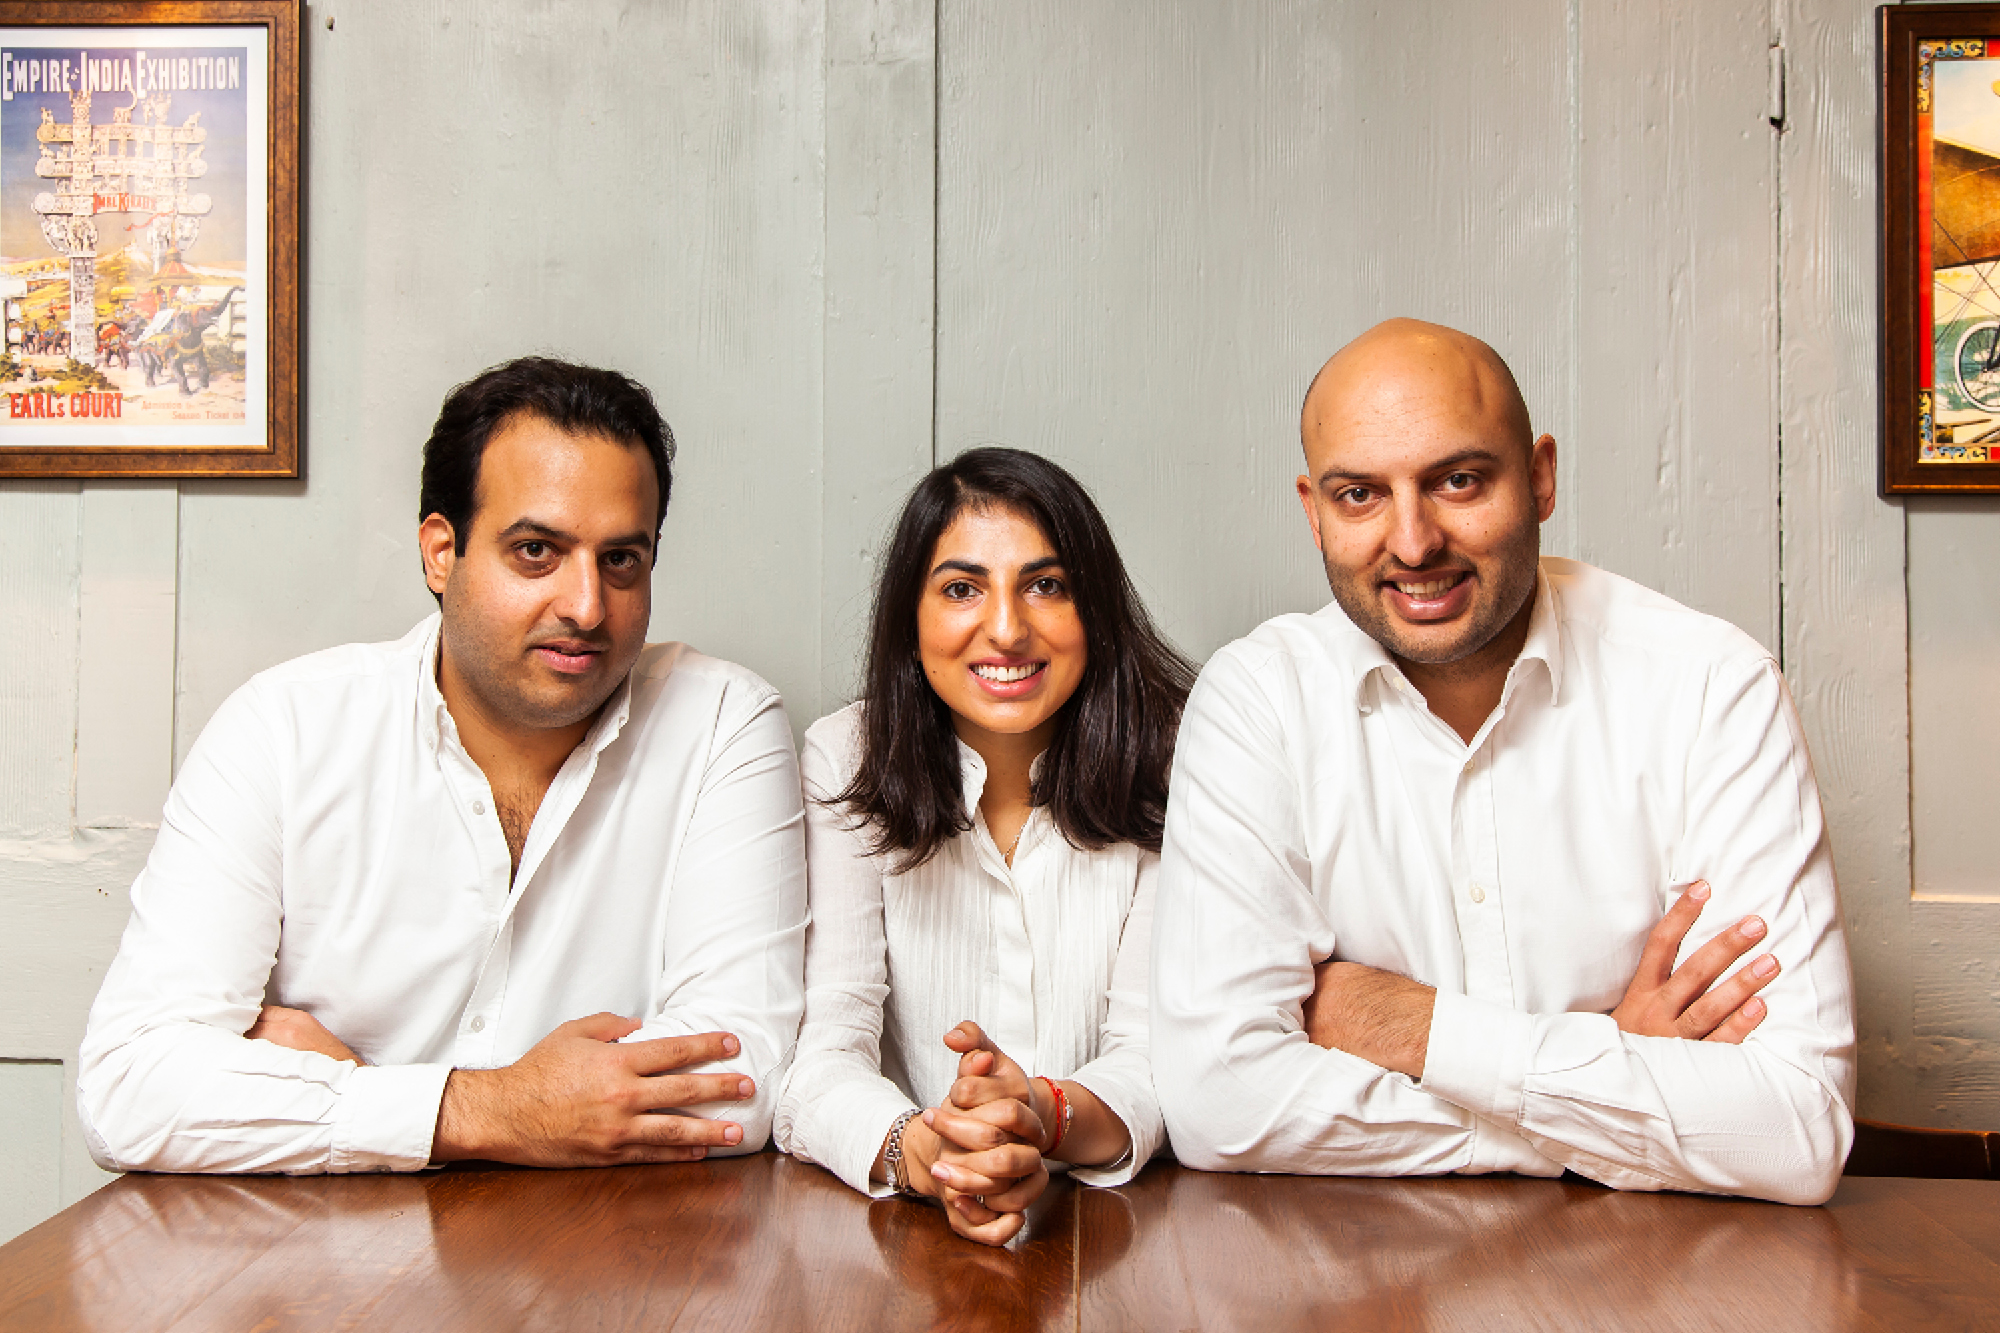 Karam, Simaoma amd Jyotin Sethi form restaurant super group JKS.